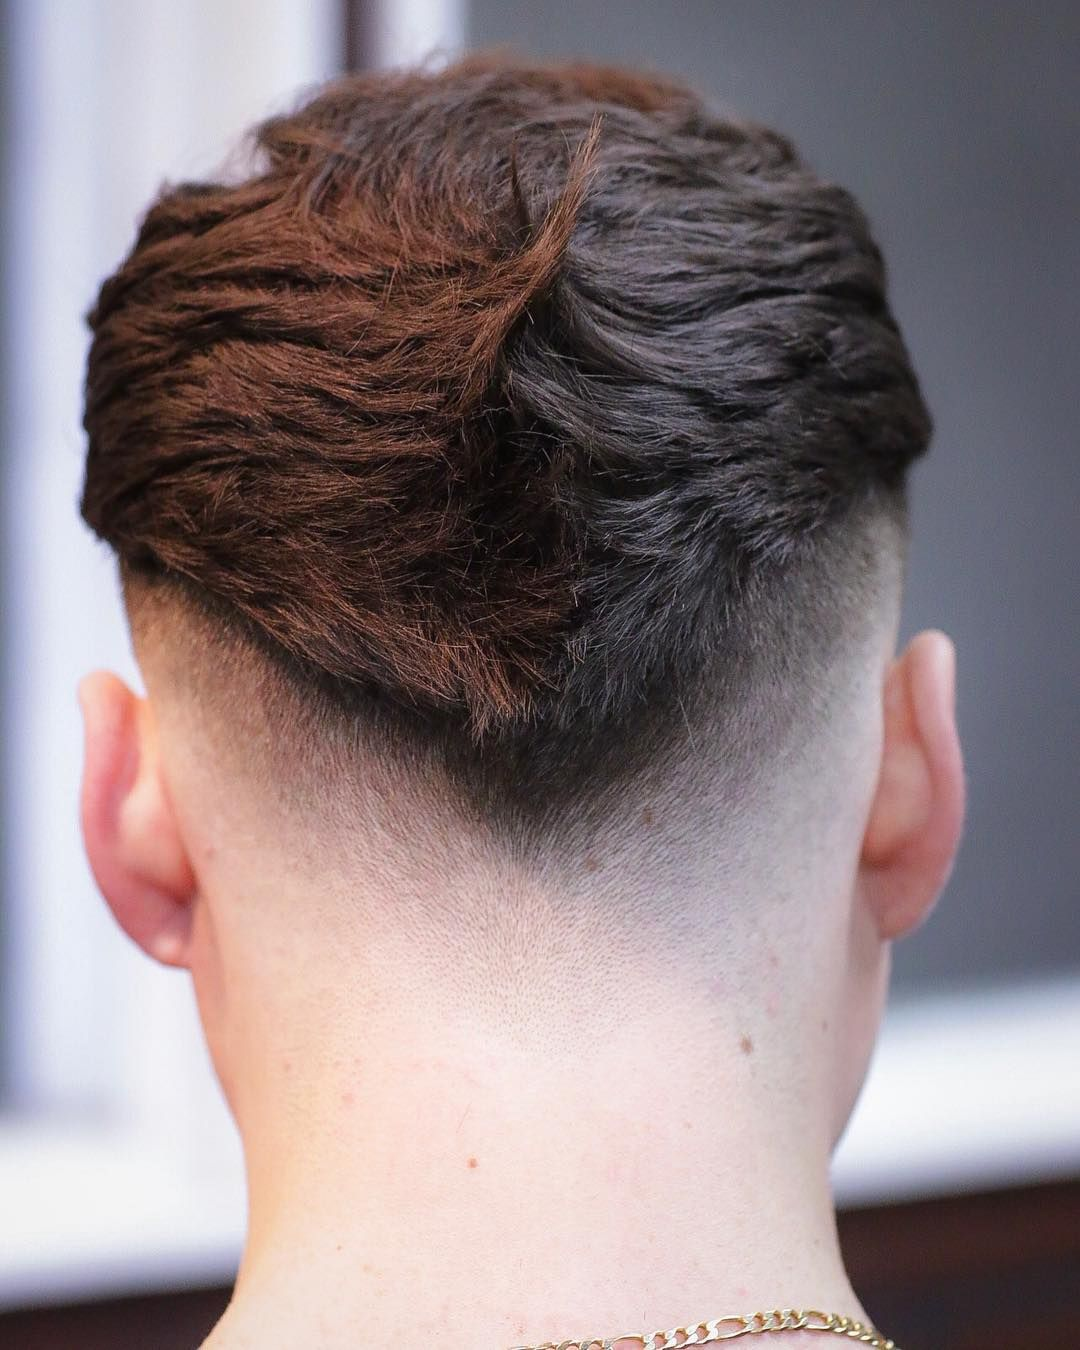 Pin On Men S Hair Cool Cuts Colors